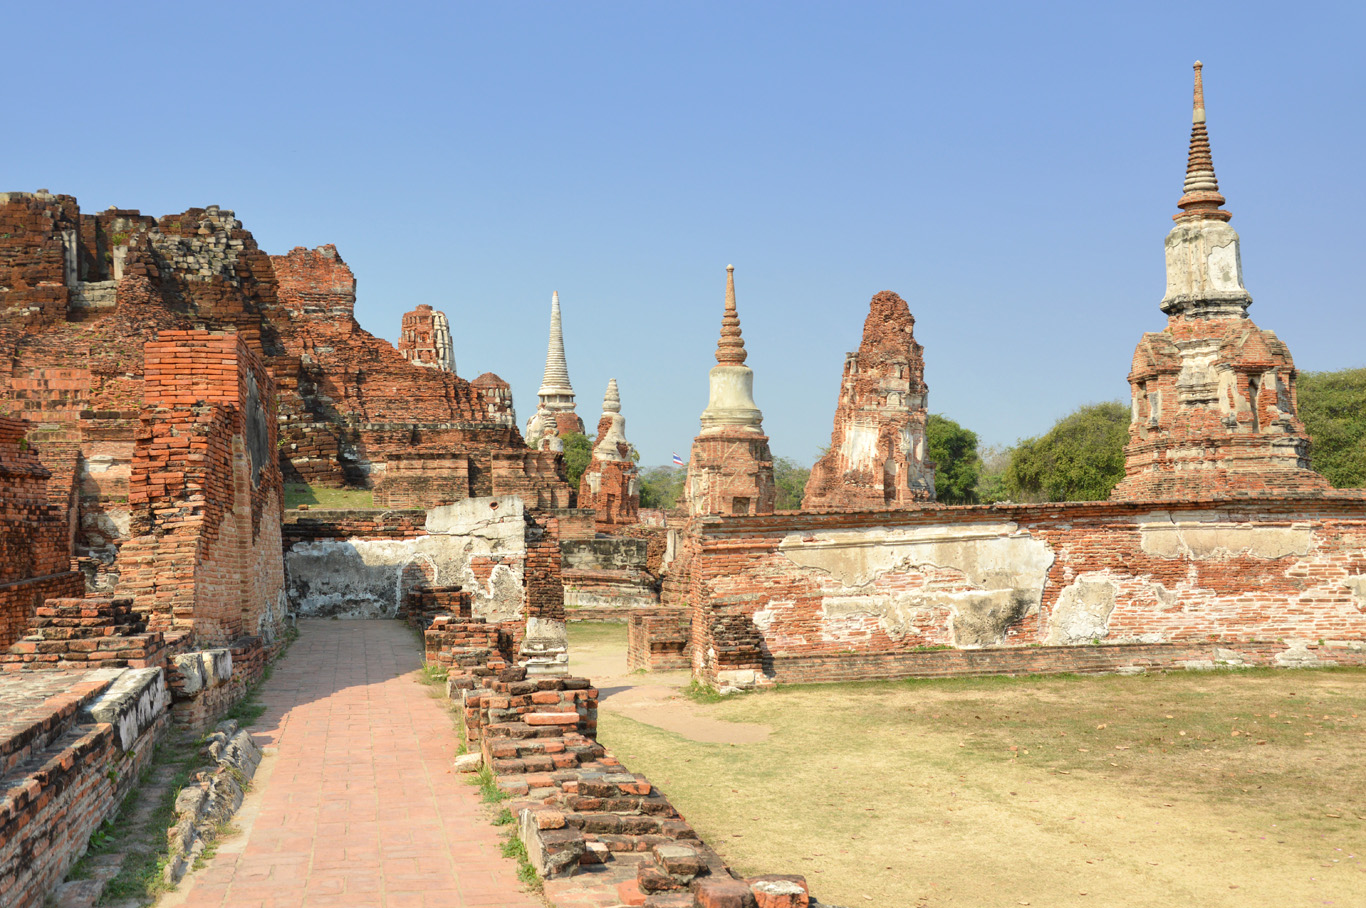 Ruins of the temples